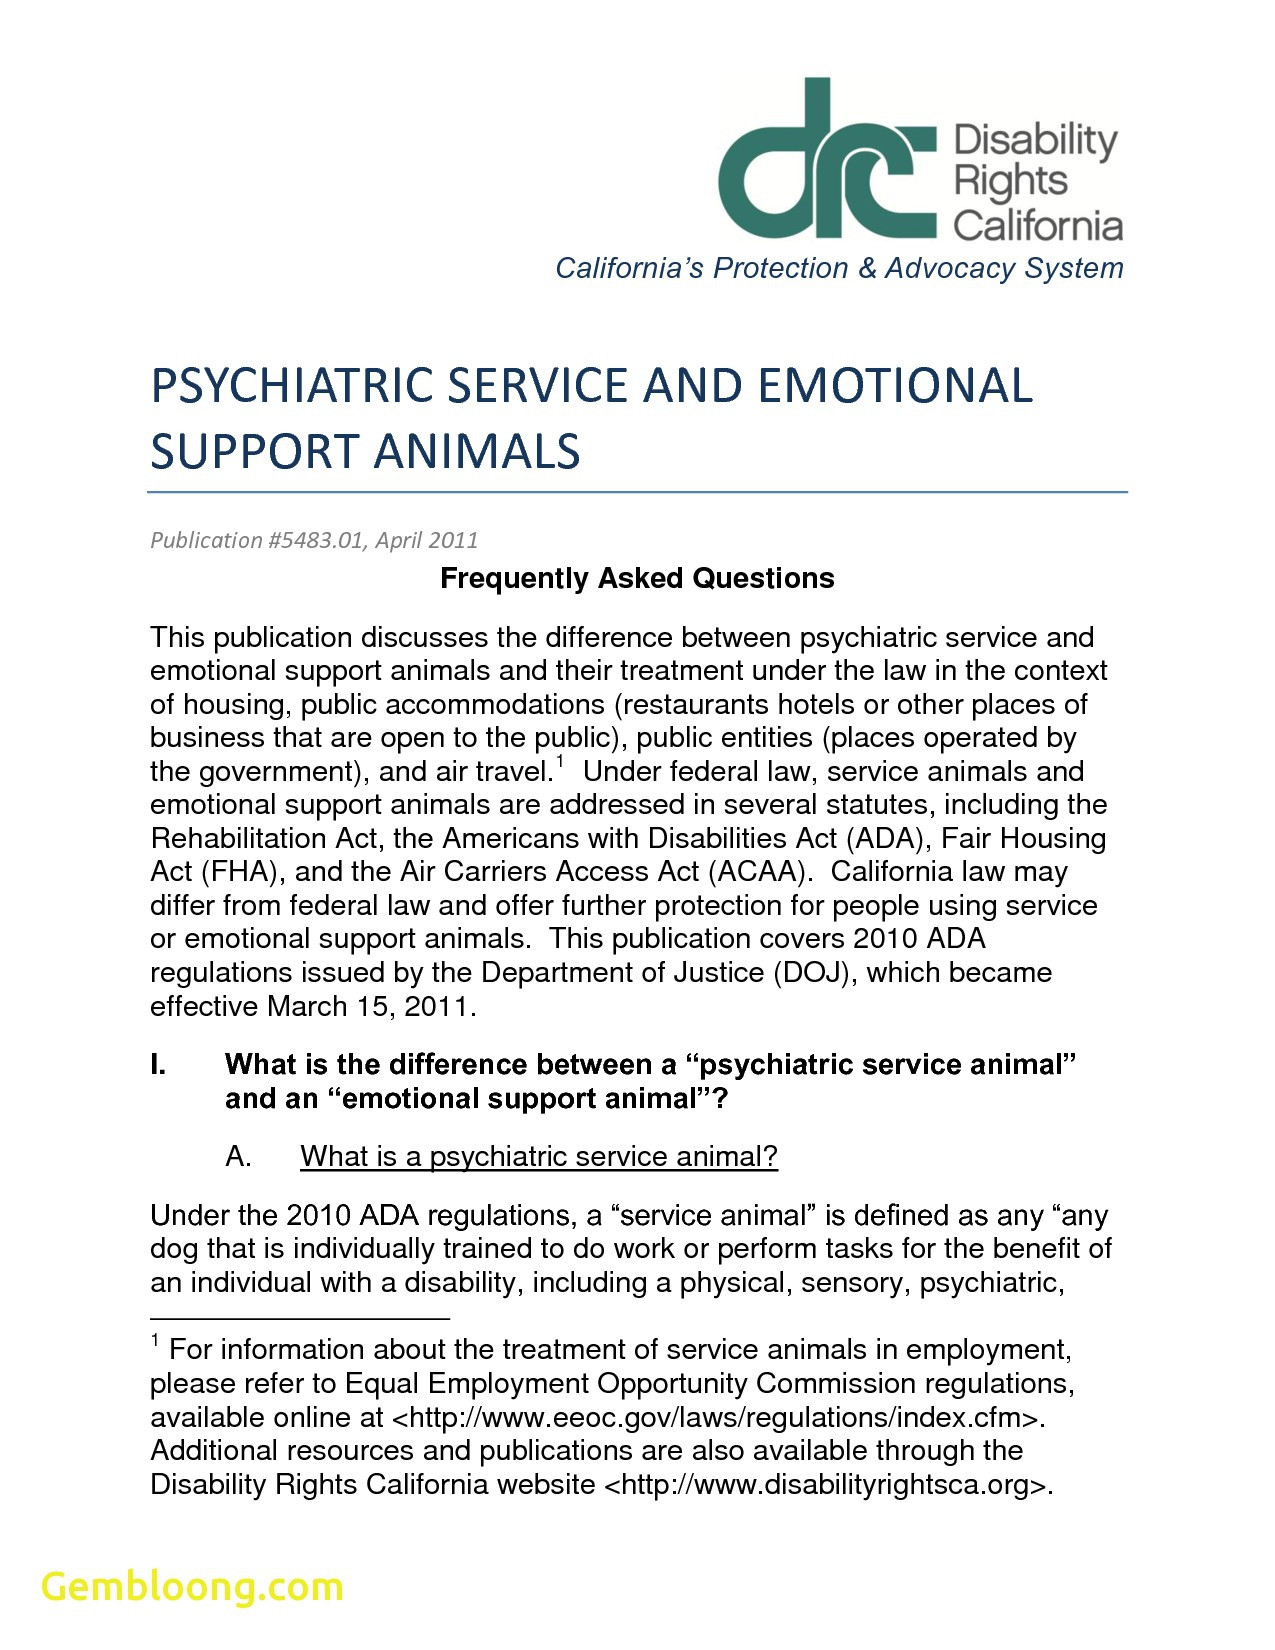 Psychiatric Service Dog Letter Template - Staggering Emotional assistance Animal Letter